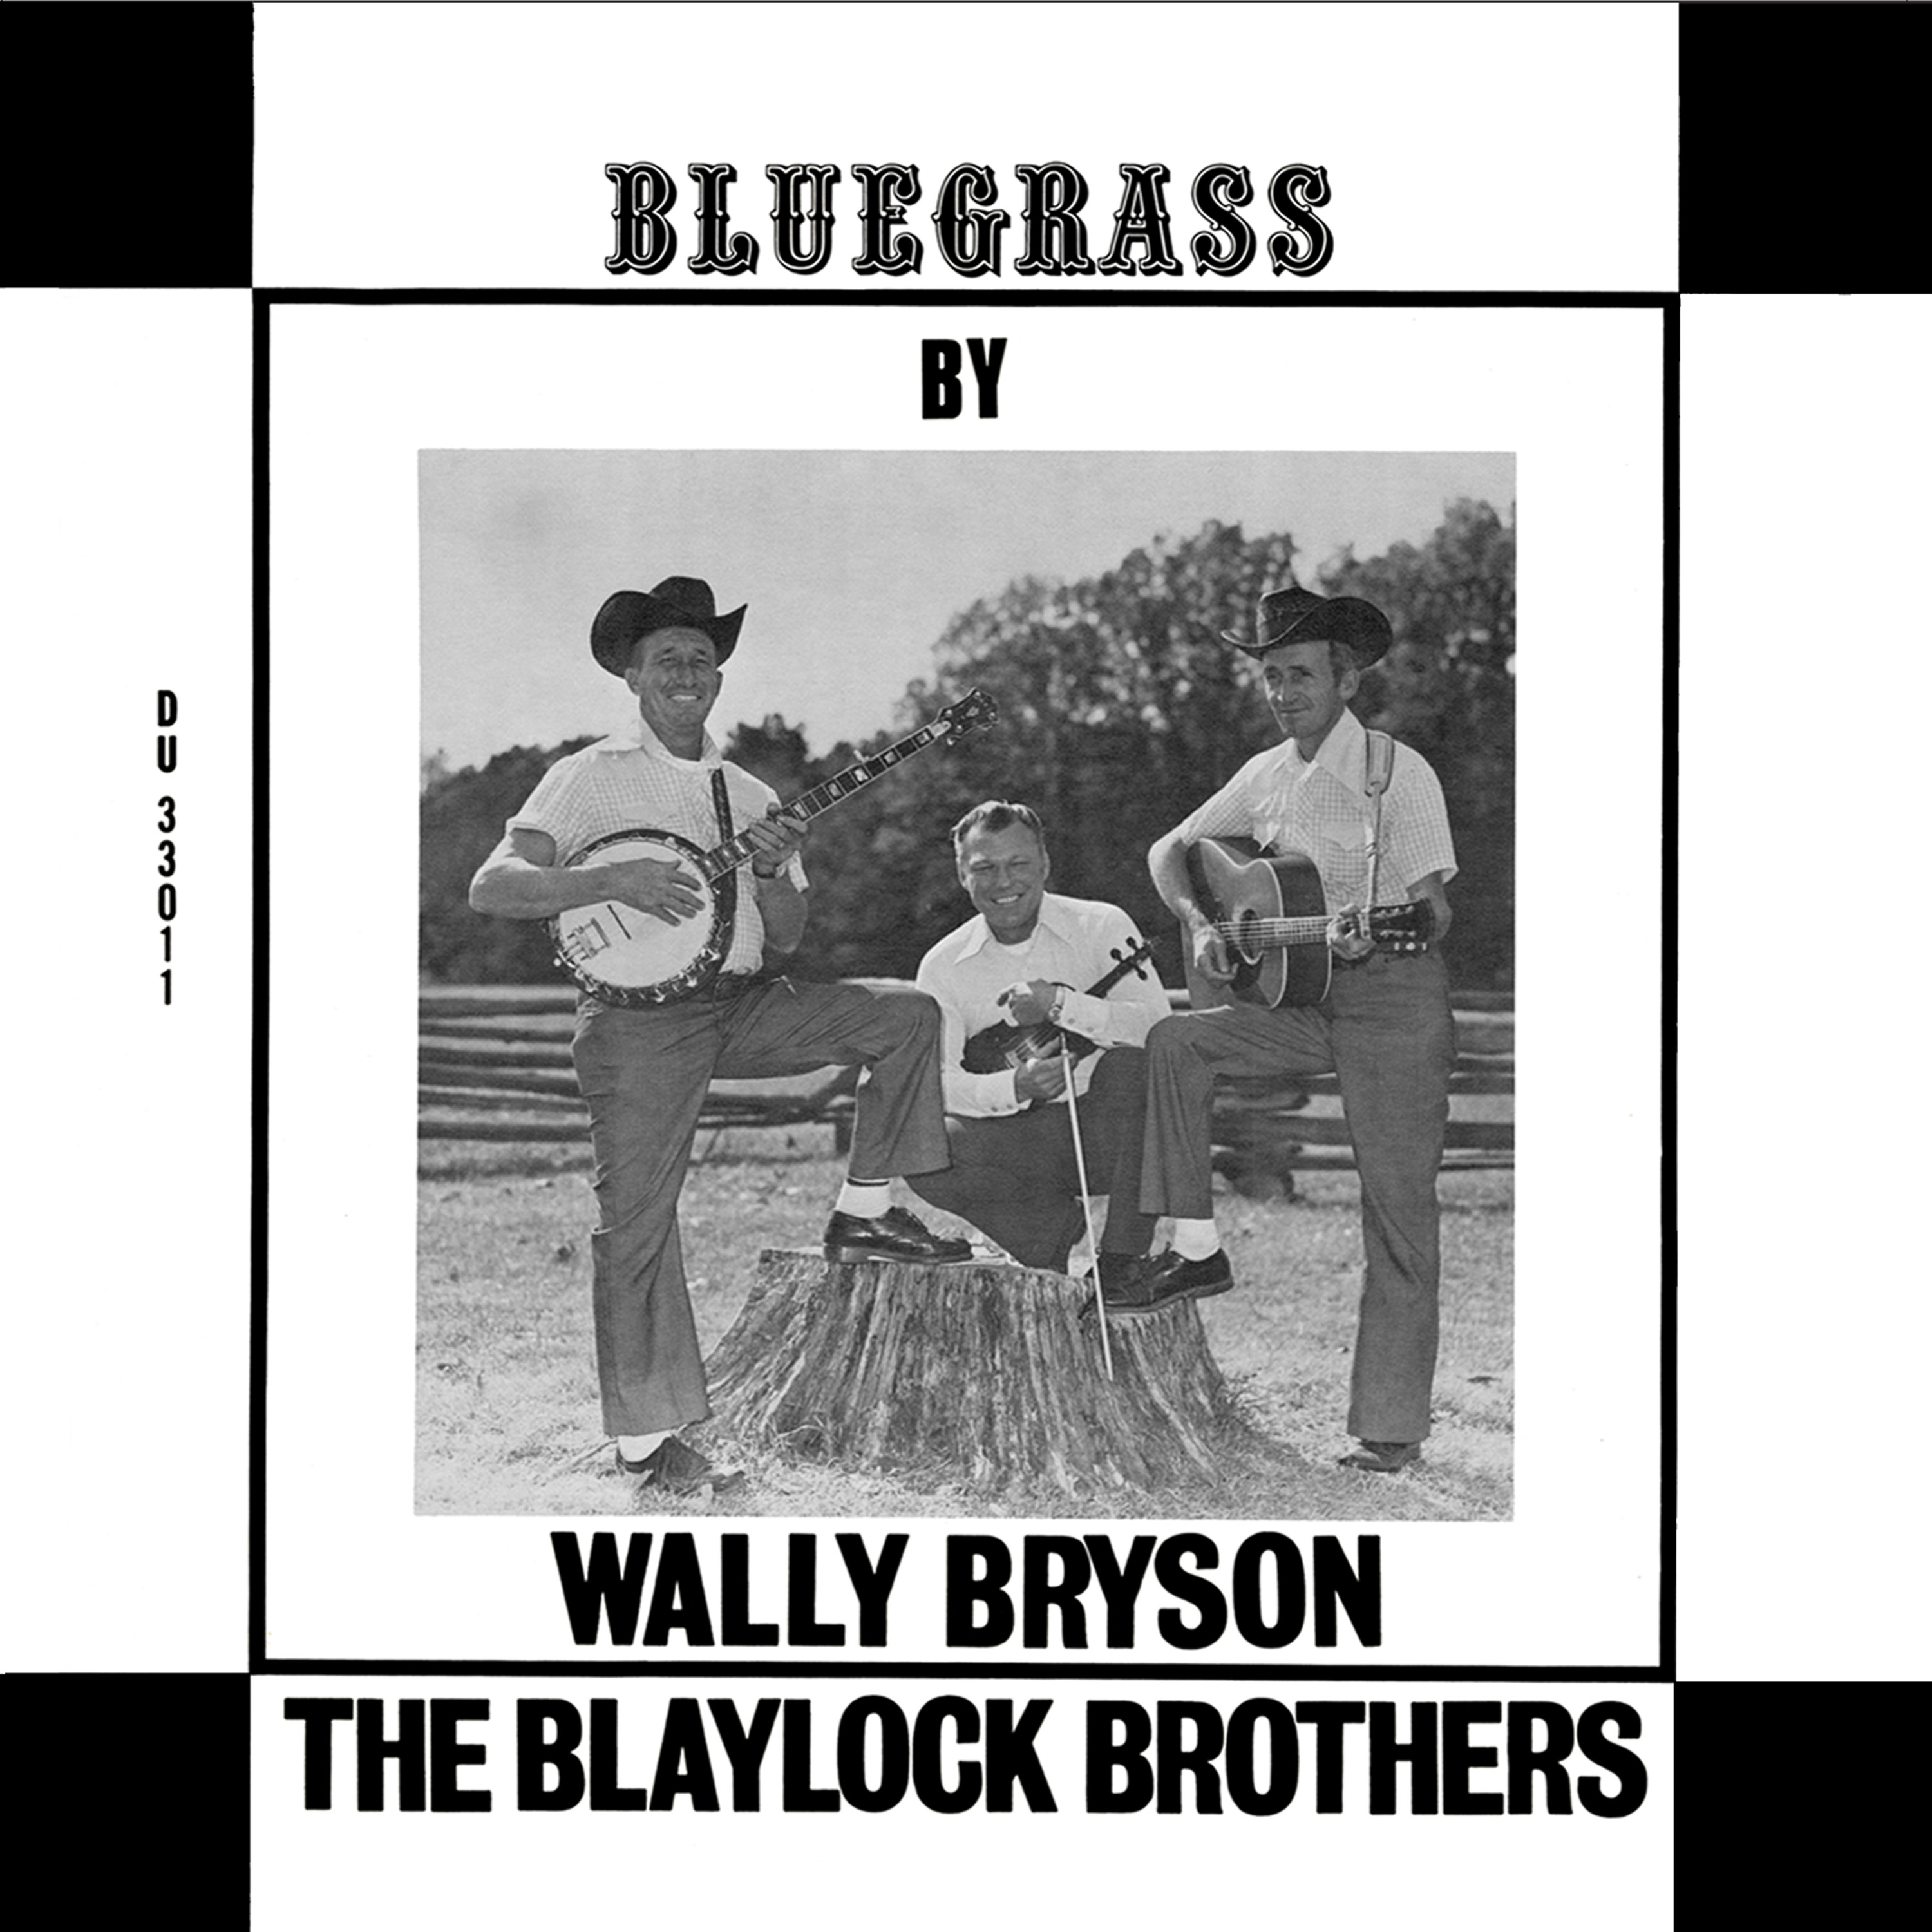 Wally Bryson & the Blaylock Brothers - Bluegrass